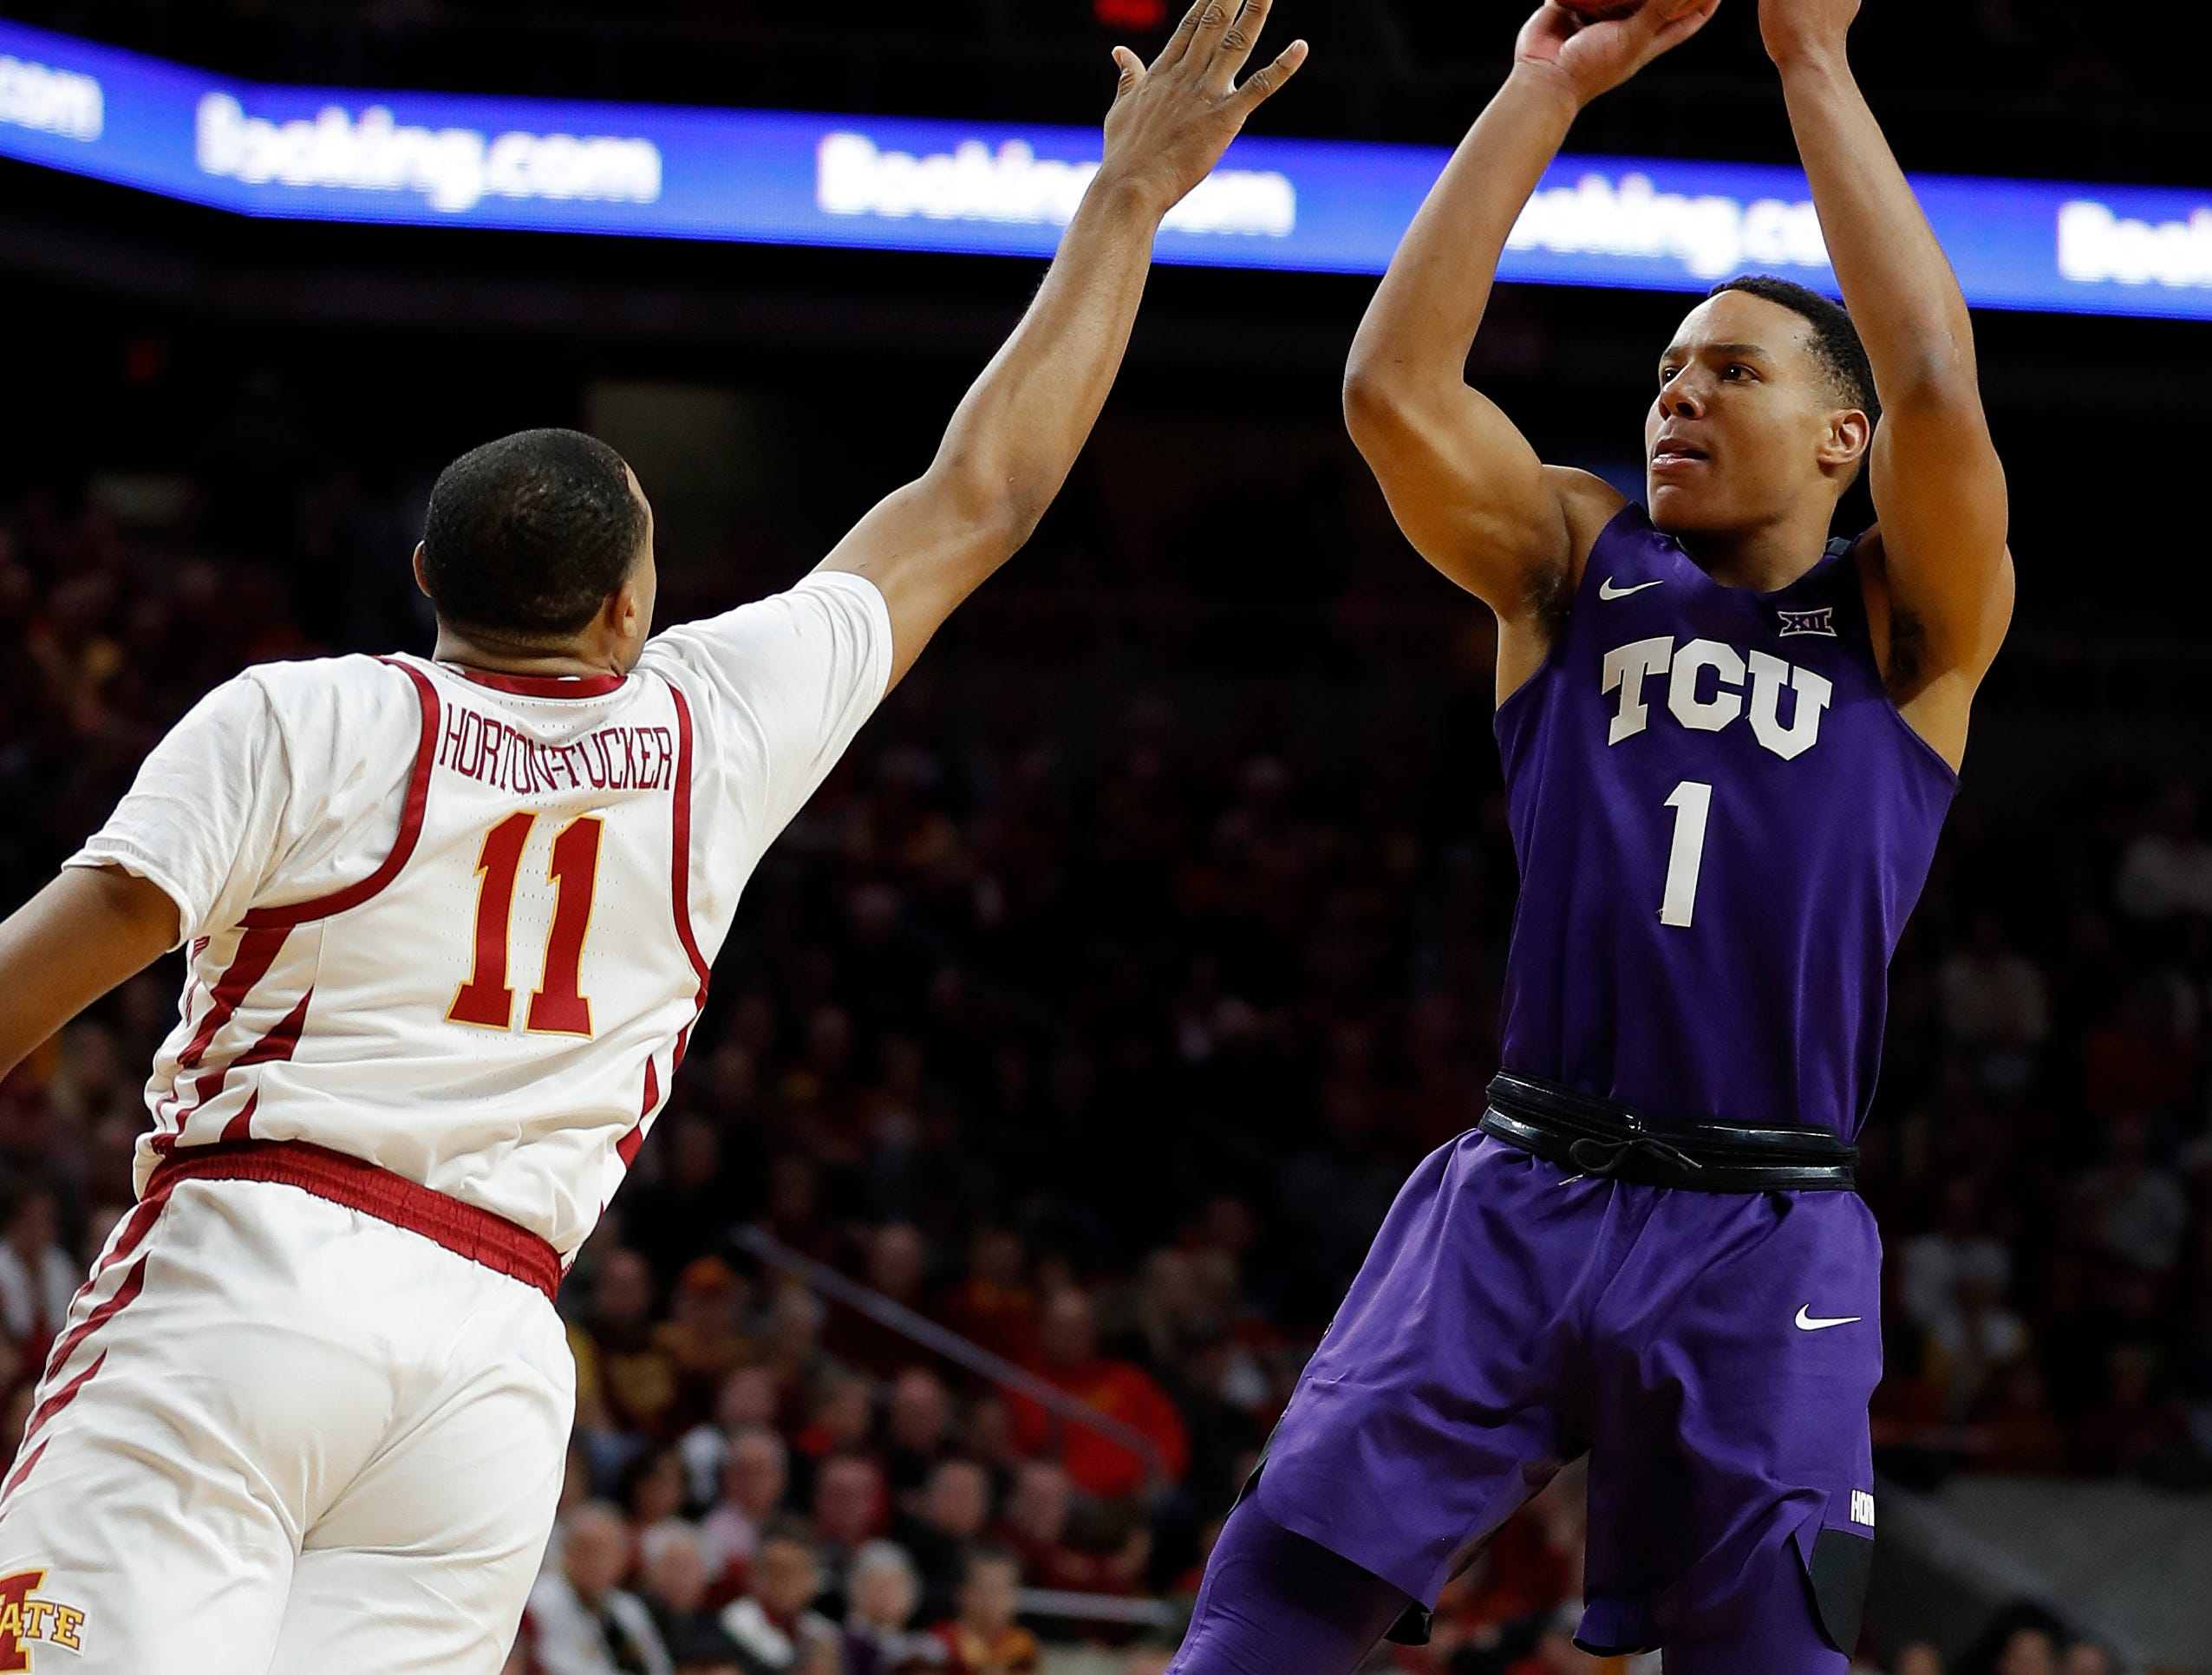 TCU guard Desmond Bane, right, shoots over Iowa State guard Talen Horton-Tucker, left, during their game Saturday, Feb. 9, 2019, in Ames.